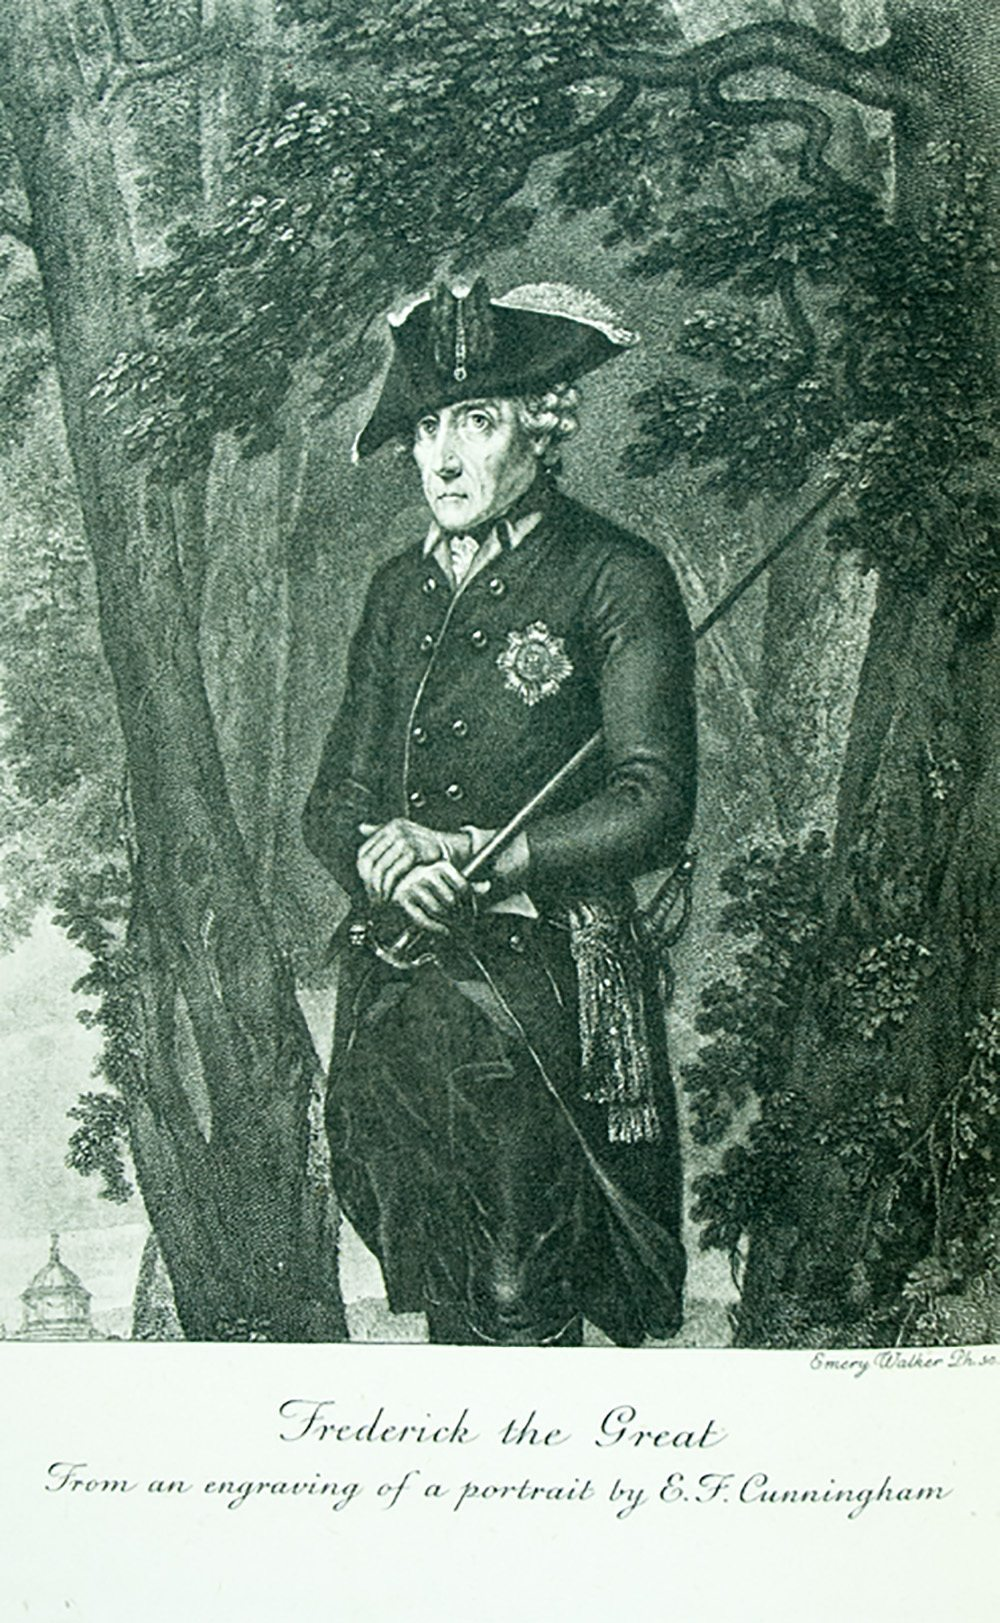 The Life of Frederick the Great.